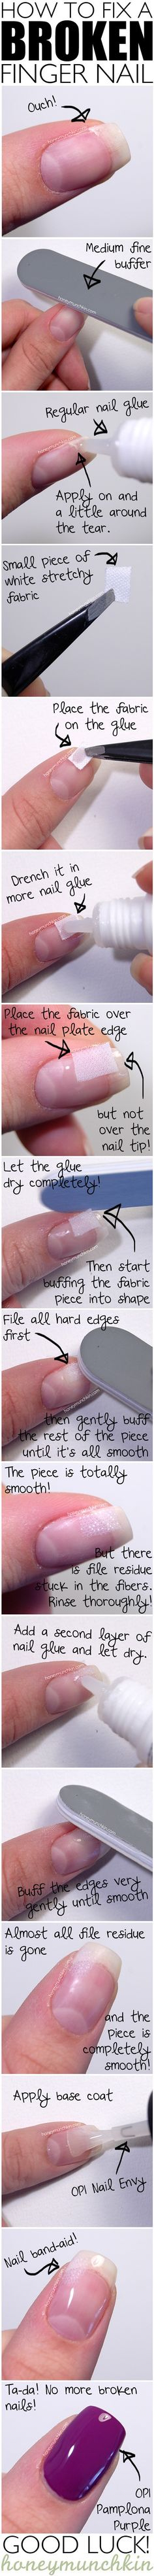 How to fix a broken nail! This is going to be really useful someday.